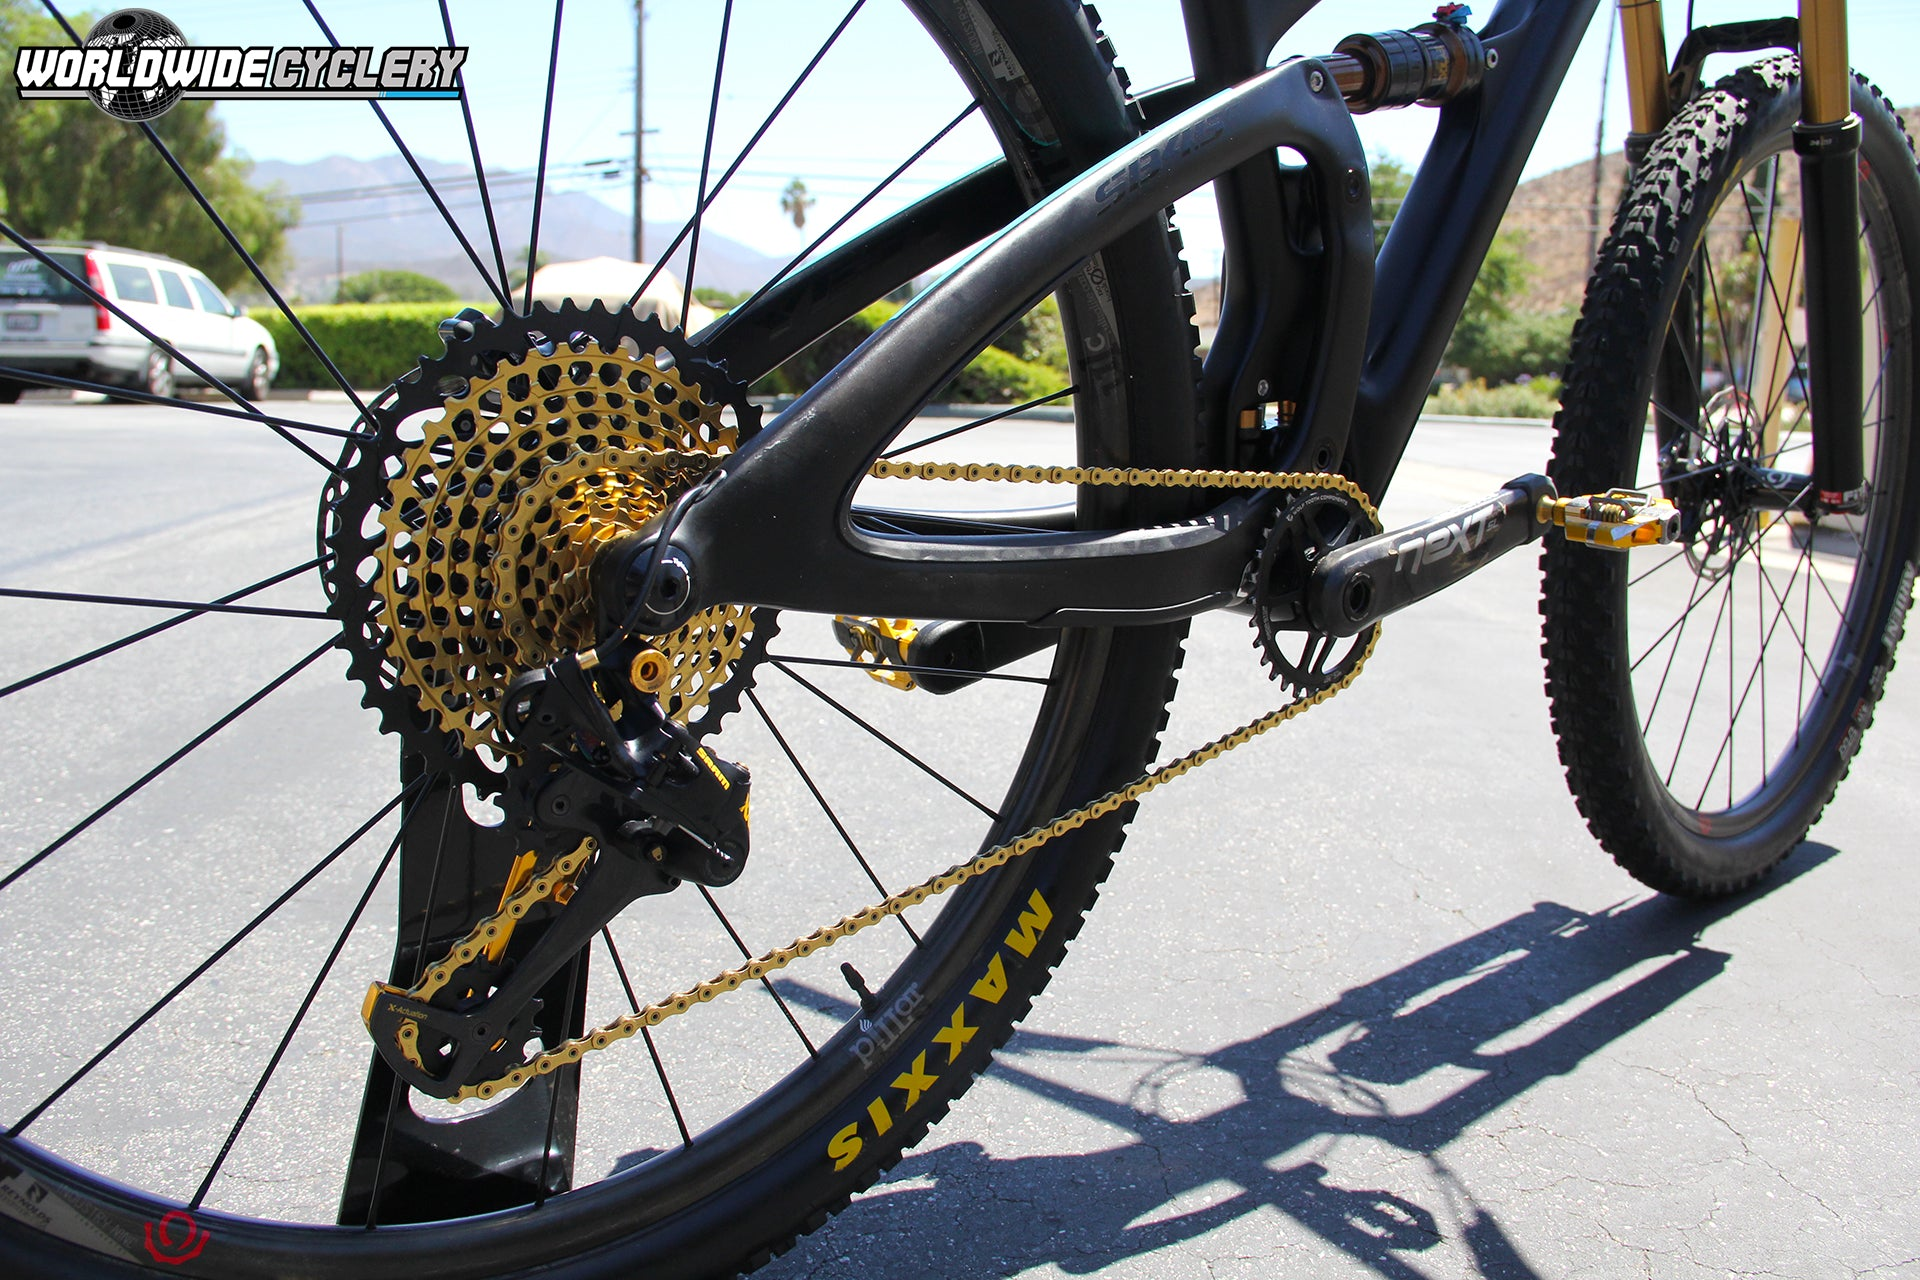 Yeti SB4.5c with SRAM Eagle 1 x 12 Drivetrain